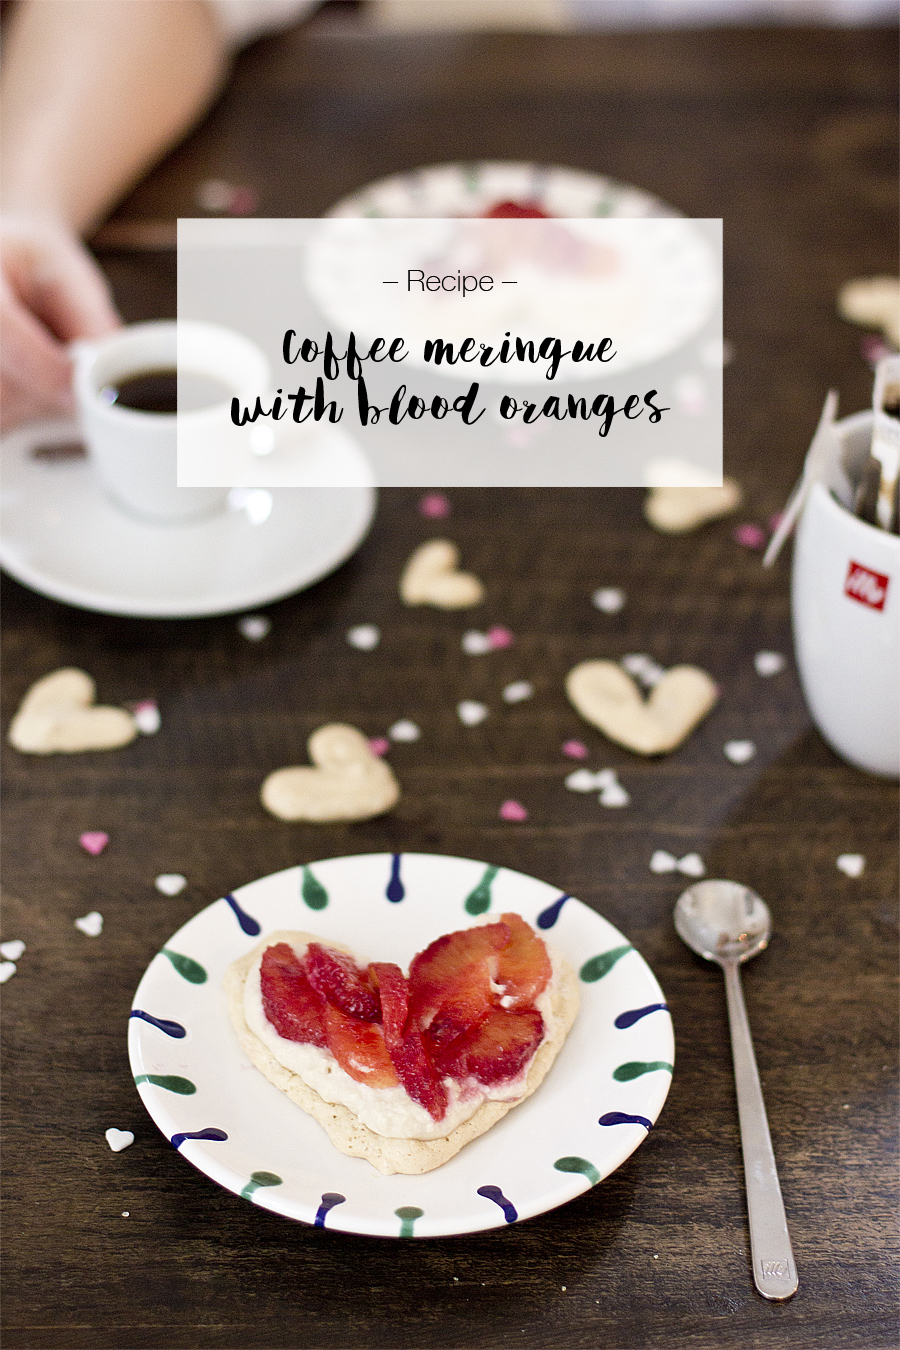 Valentine's Day dessert idea: Coffee meringue with blood oranges | LOOK WHAT I MADE ...